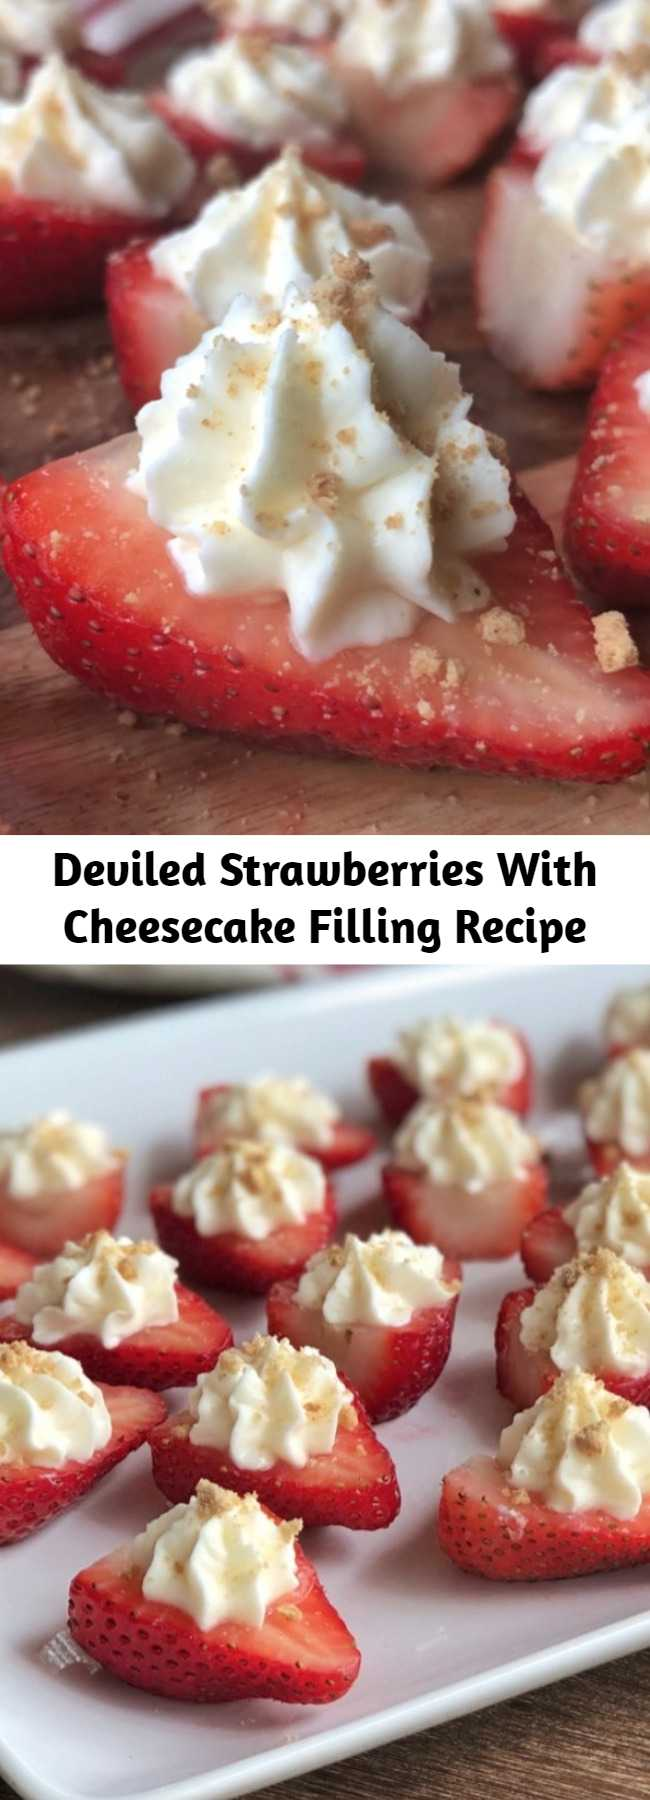 Deviled Strawberries With Cheesecake Filling Recipe - Looking for easy party appetizers for a crowd? This easy finger food idea is always a hit! They taste just like strawberry cheesecake, but in fun bite sized pieces. Quick and make ahead party food! #partyfood #deviledstrawberries